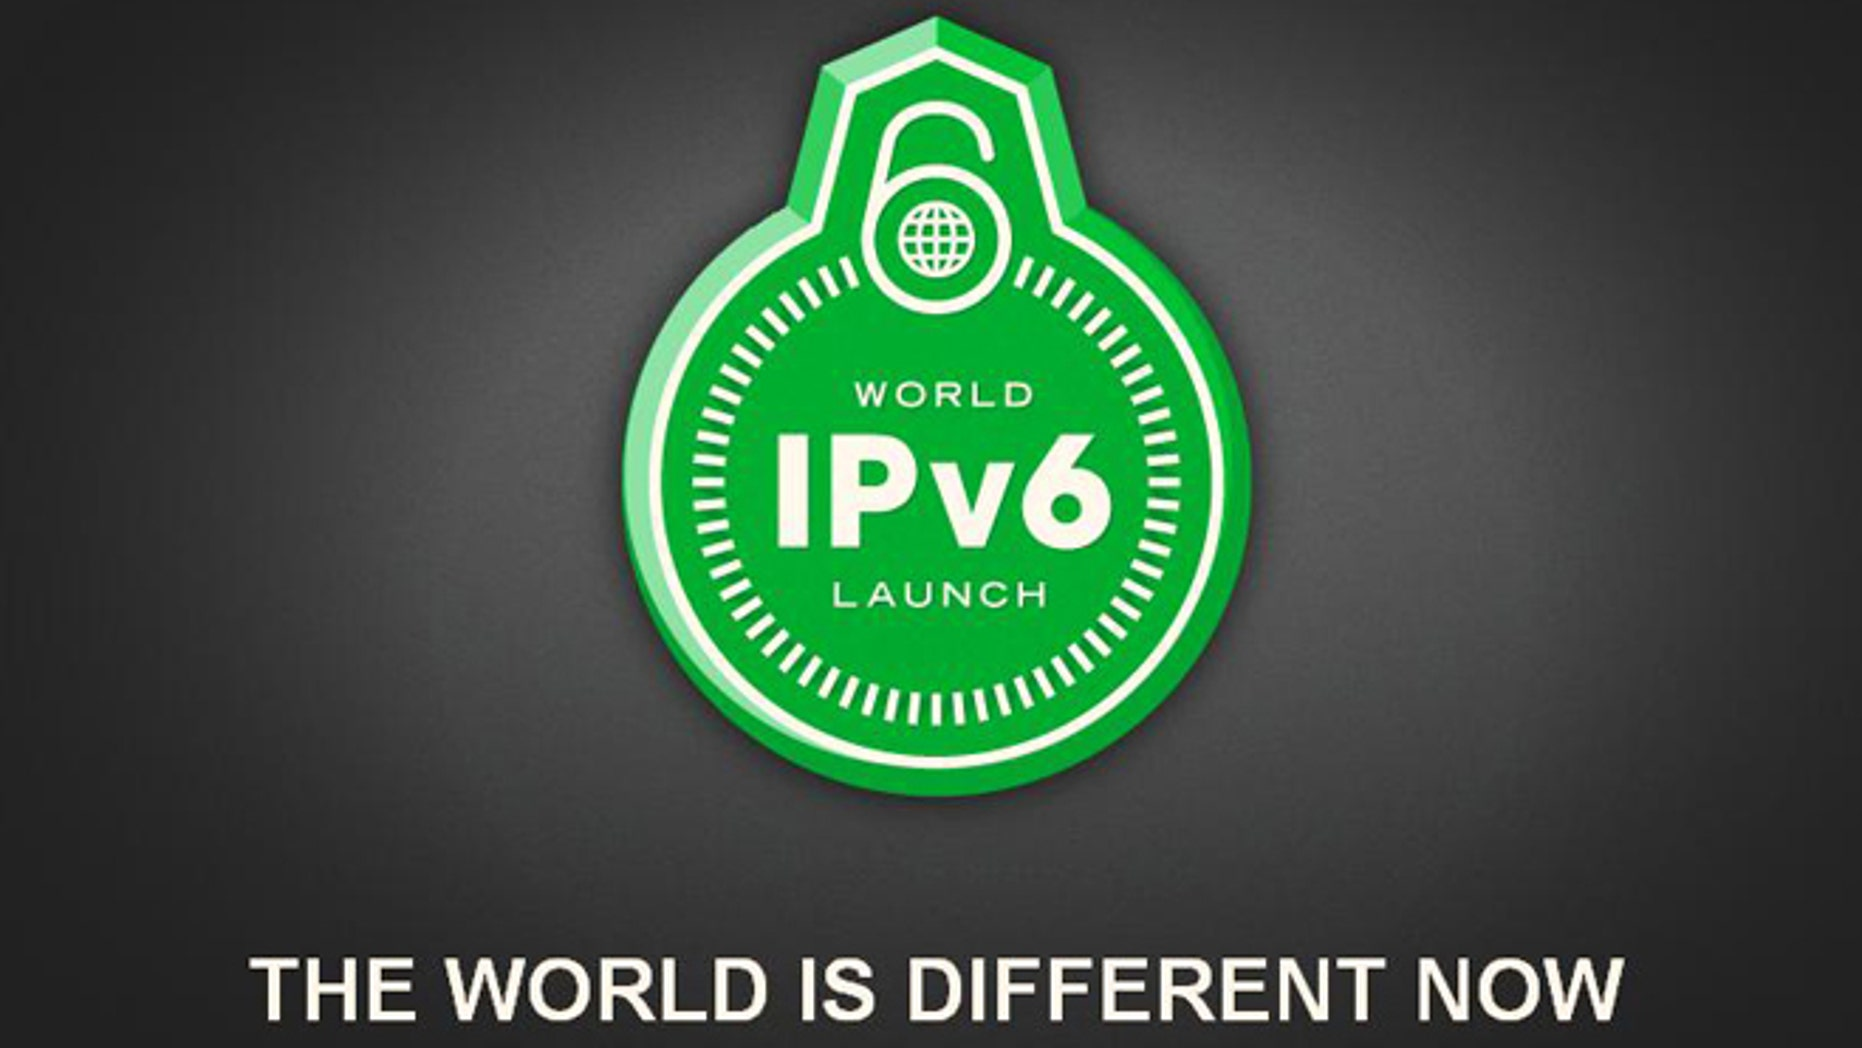 June 6, 2012: A screenshot of the homepage for World IPV6 Day, the day that major Internet service providers, home networking equipment manufacturers, and web companies around the world are coming together to permanently switch network gear to a new addressing system.